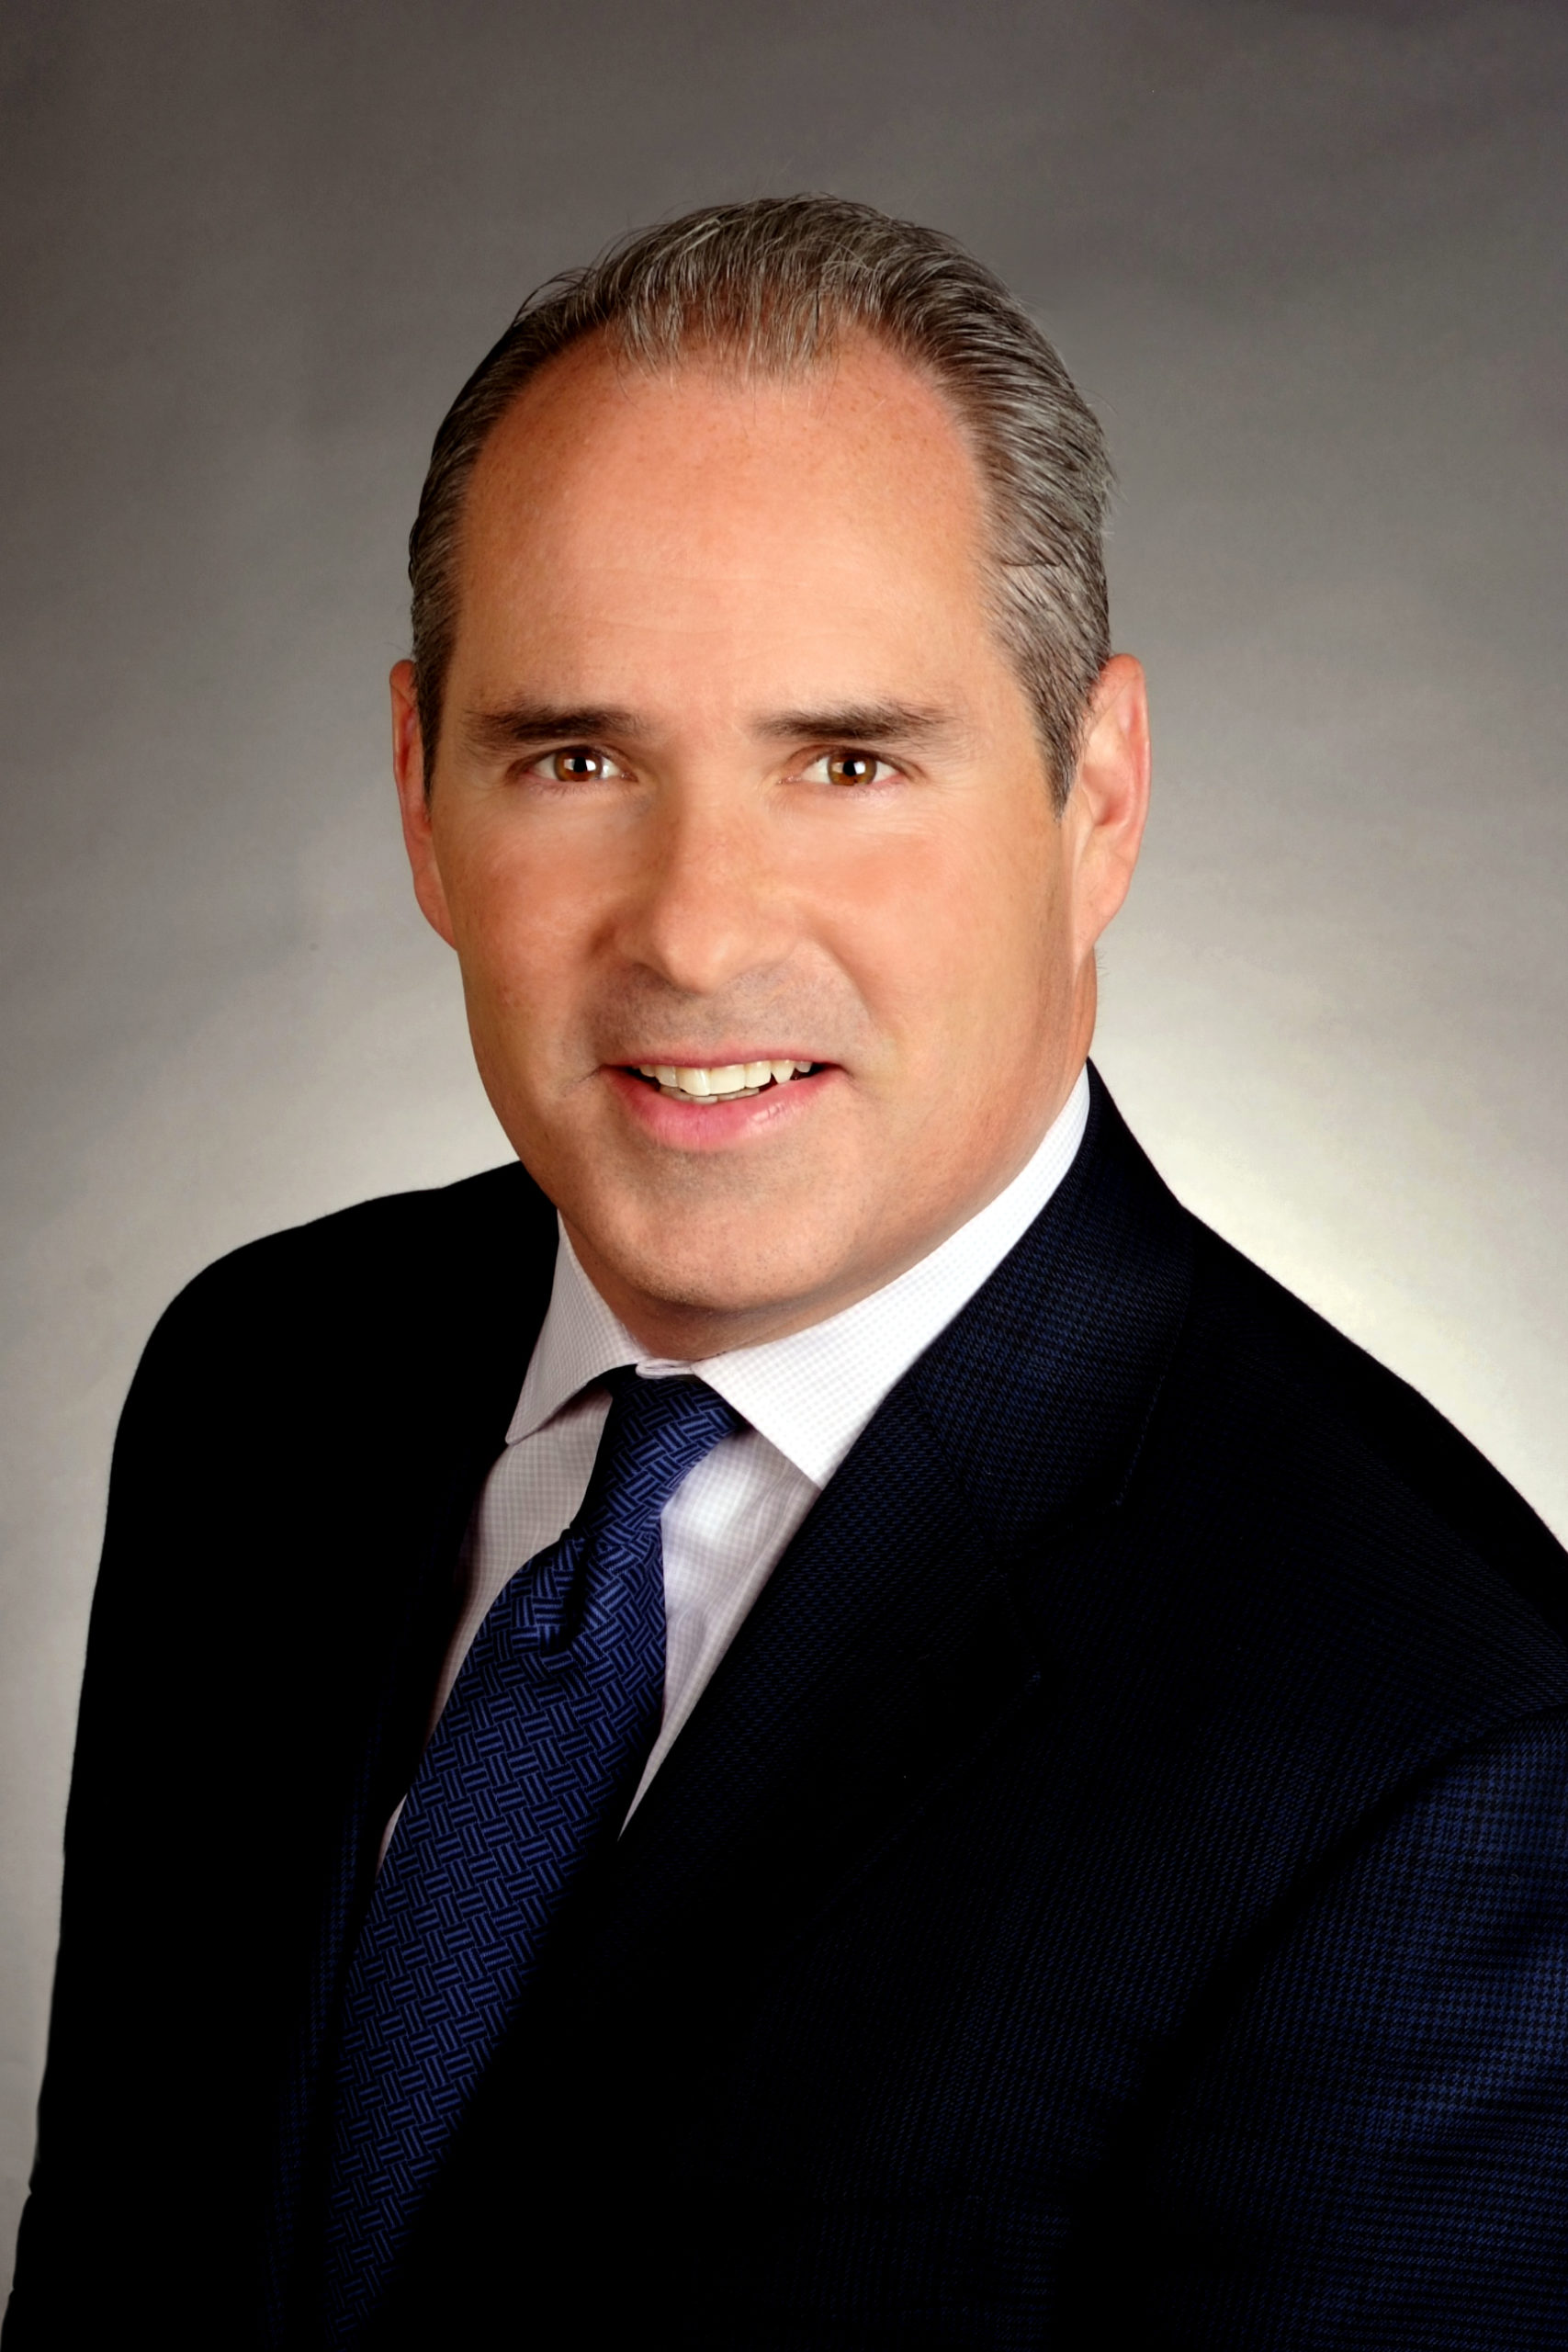 Marc Perrin, Founder and Managing Partner of The Roxborough Group